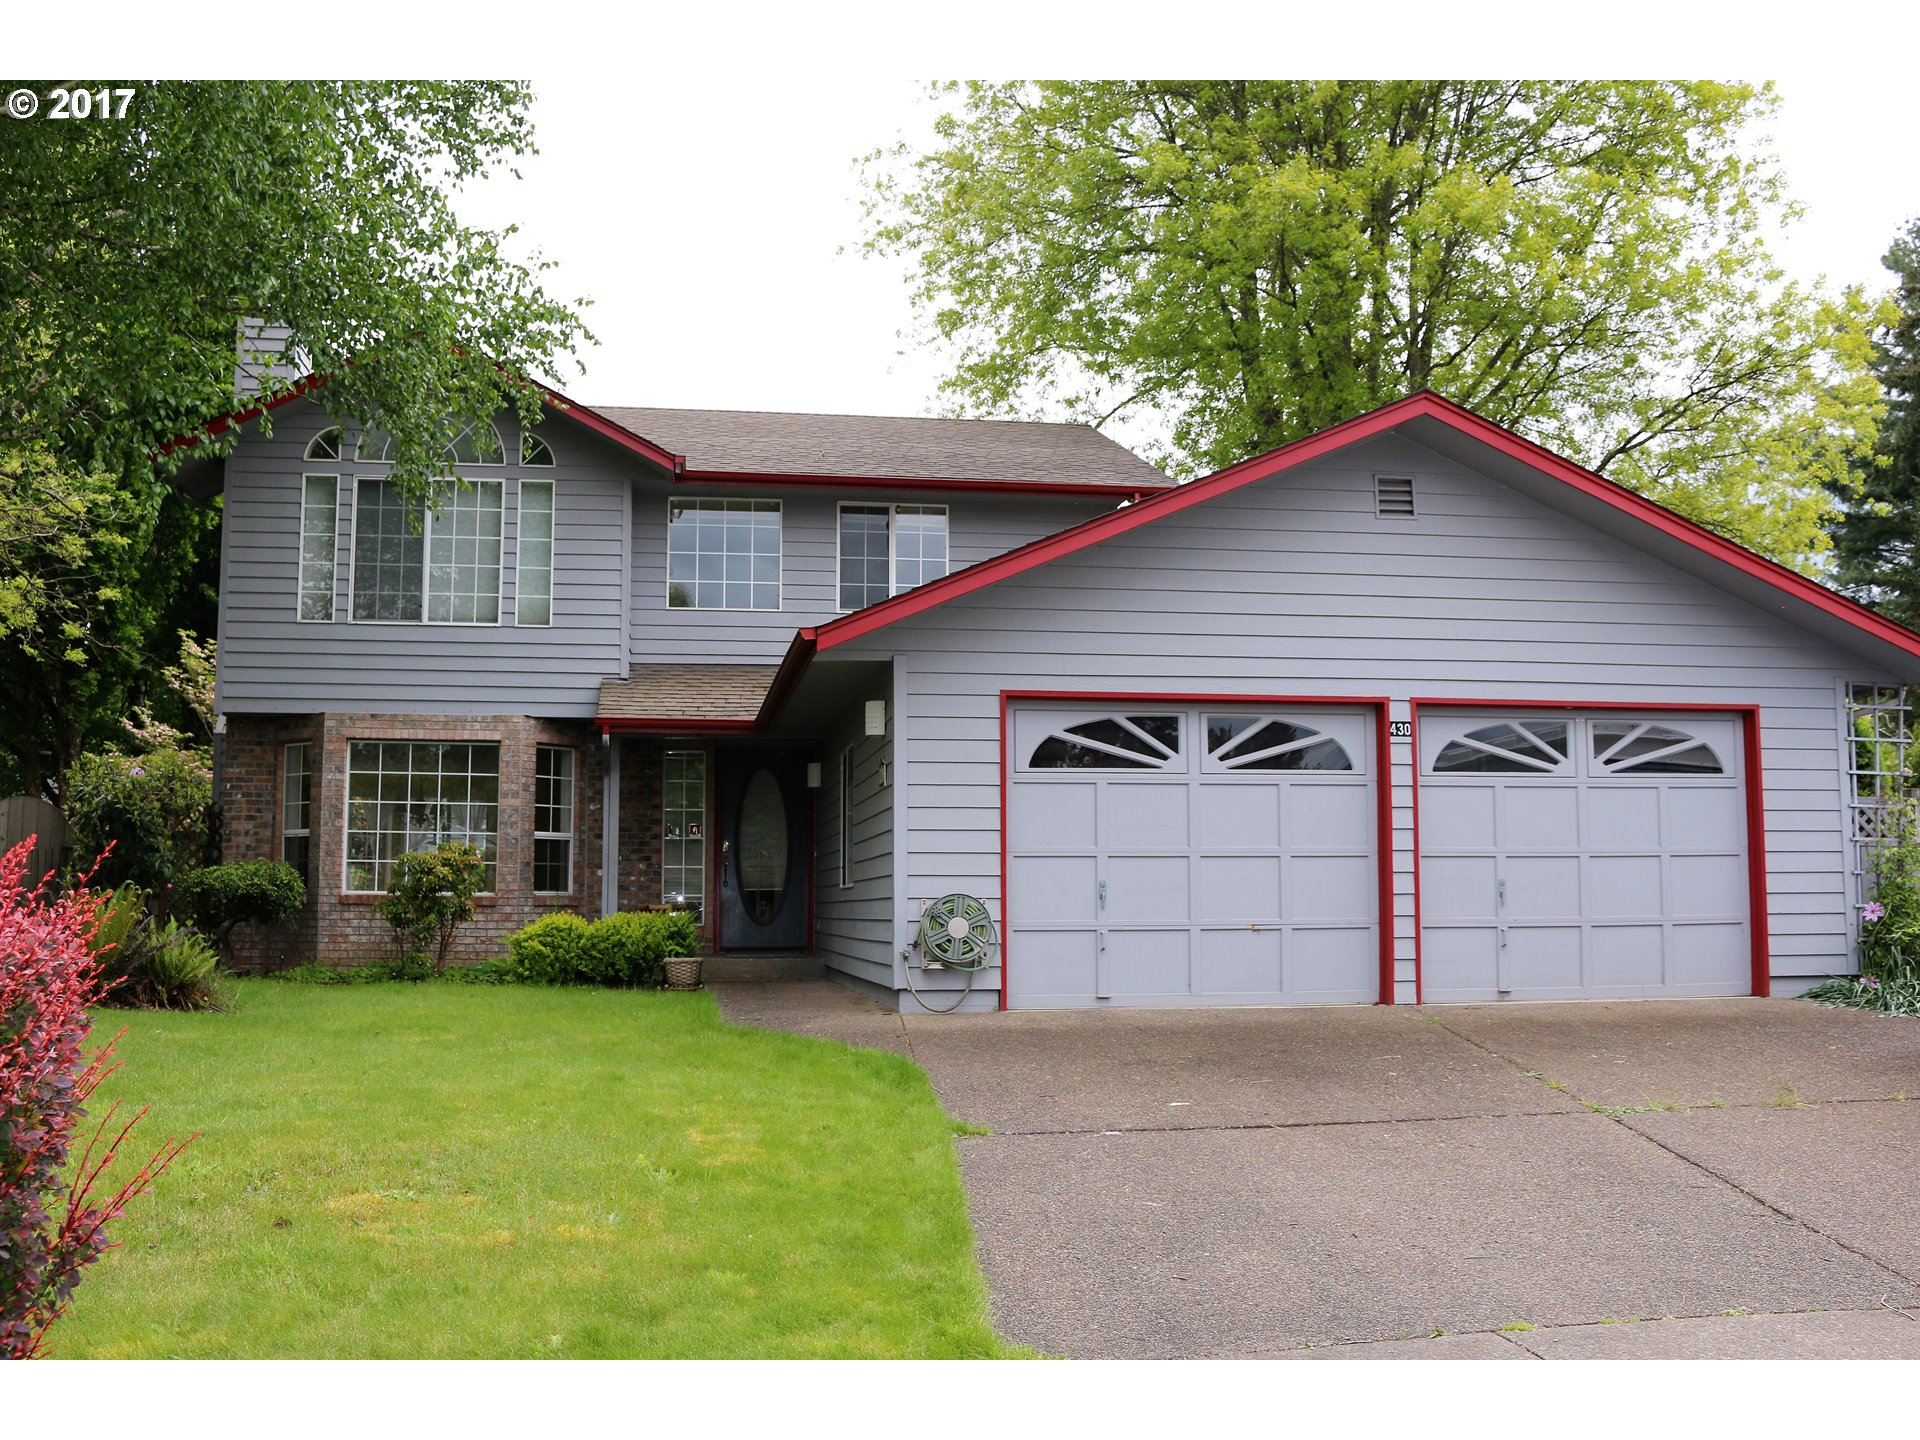 430 67TH ST Springfield, OR 97478 - MLS #: 17698799